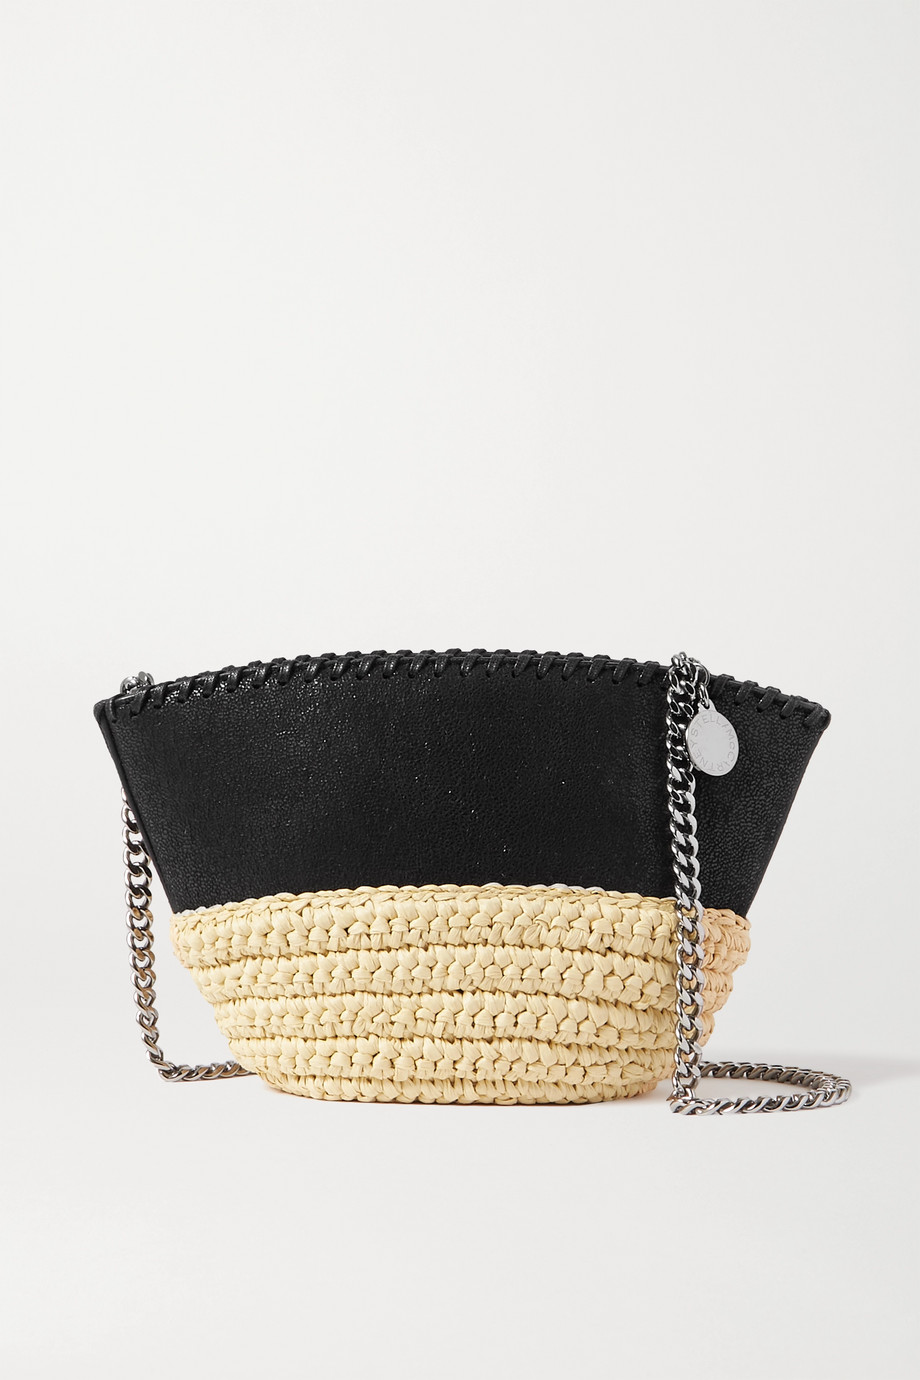 Stella McCartney The Falabella vegetarian brushed-leather and raffia shoulder bag